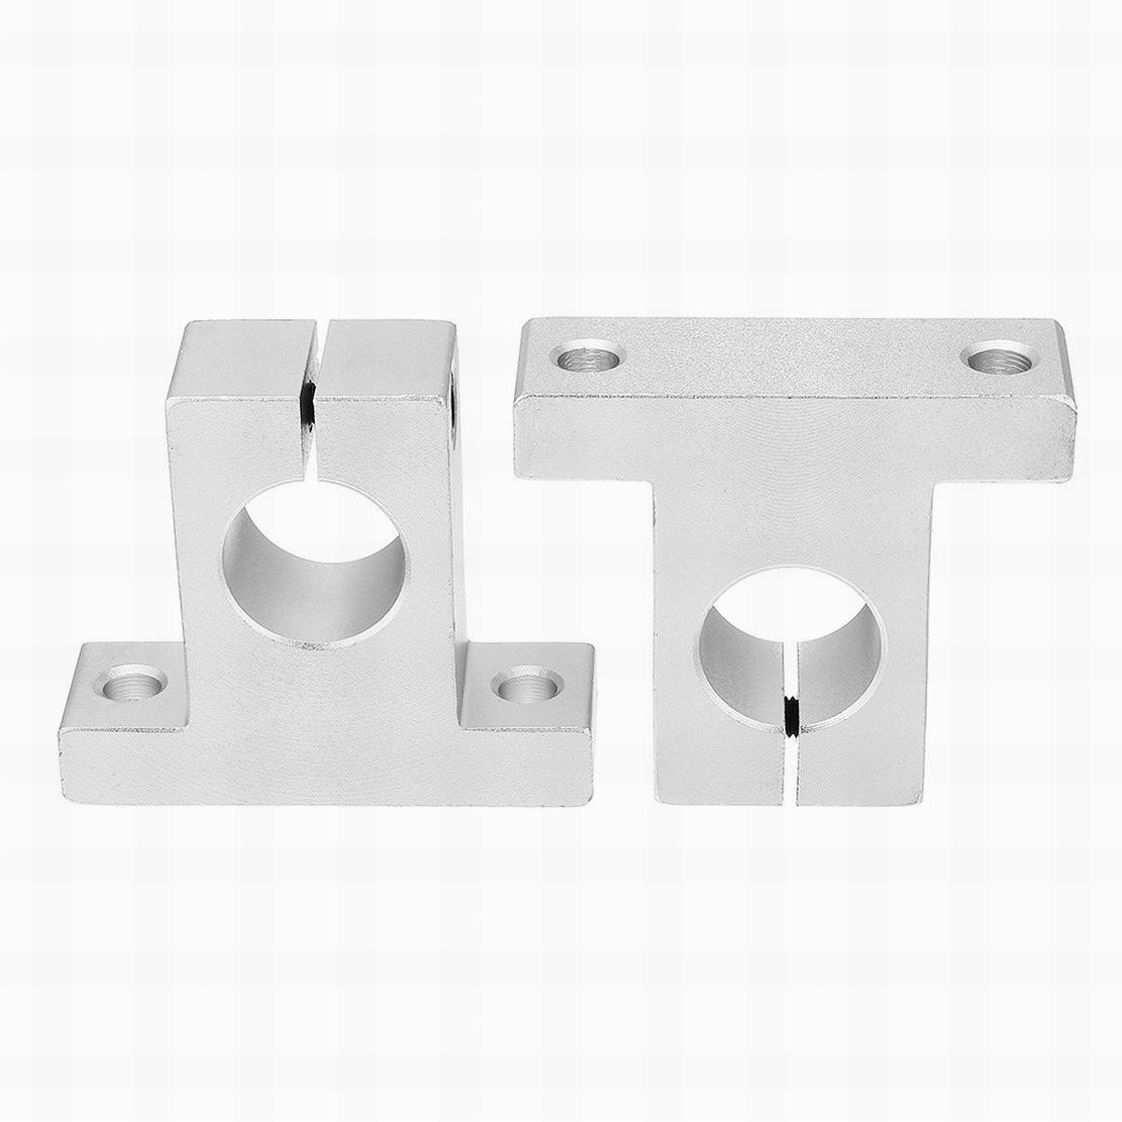 Ugtell 2pcs SK25 Aluminum Linear Motion Rail Clamping Guide Support for 25mm Dia Shaft